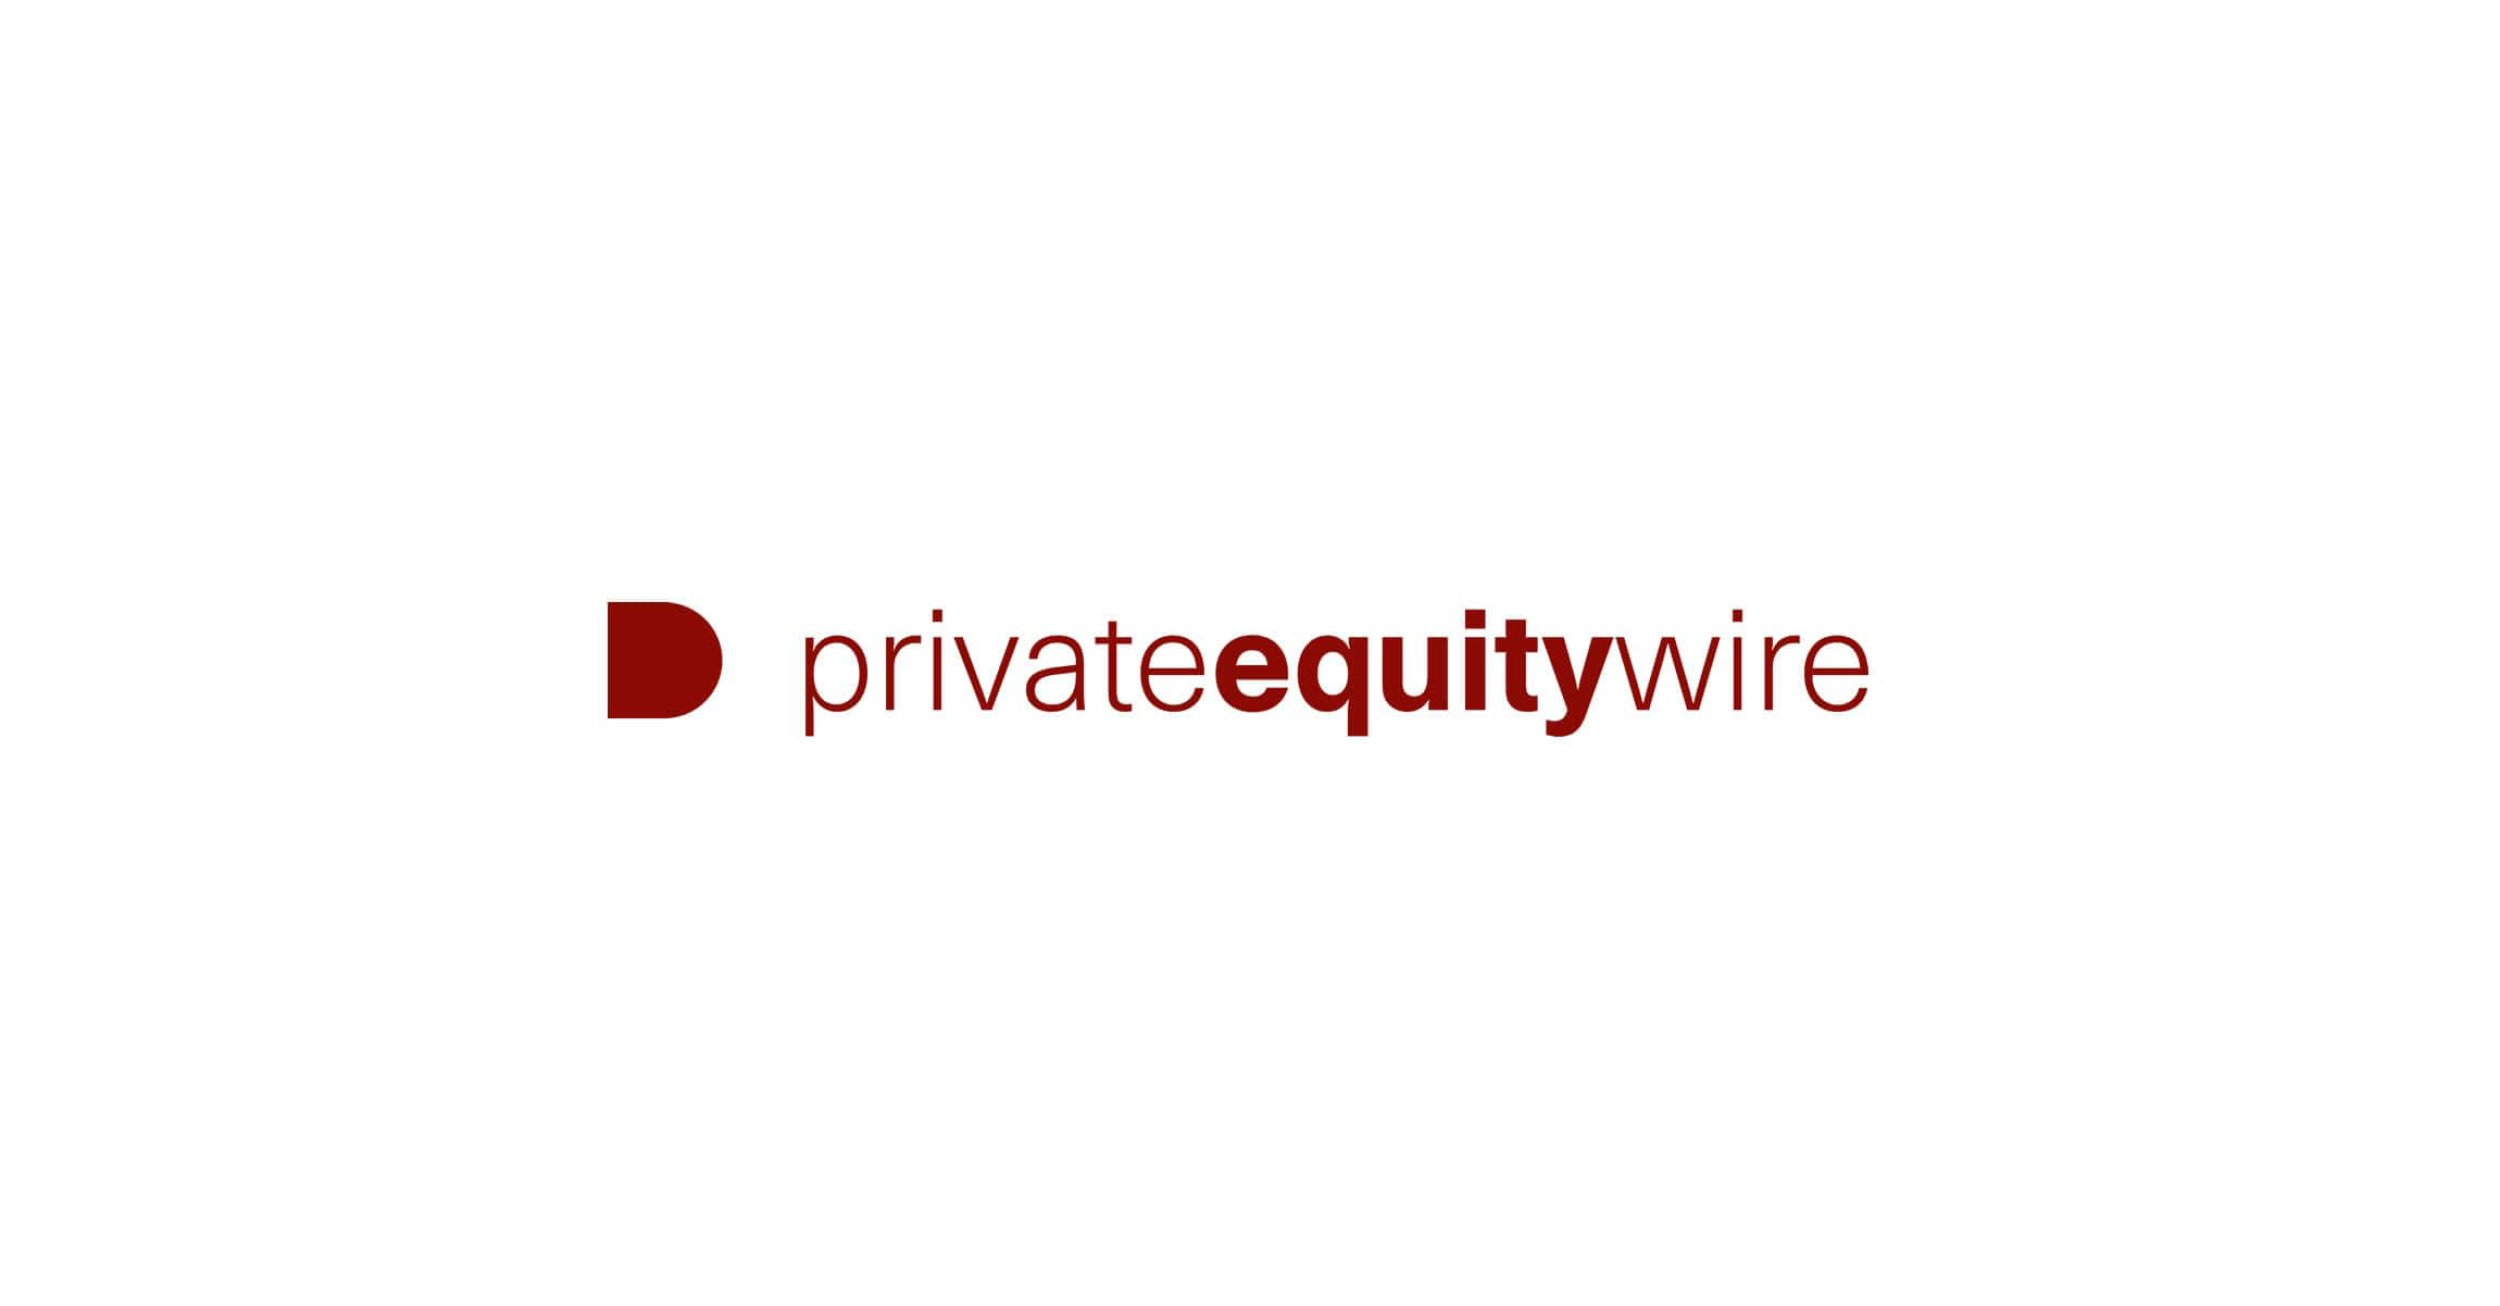 private_equity_wire_logo